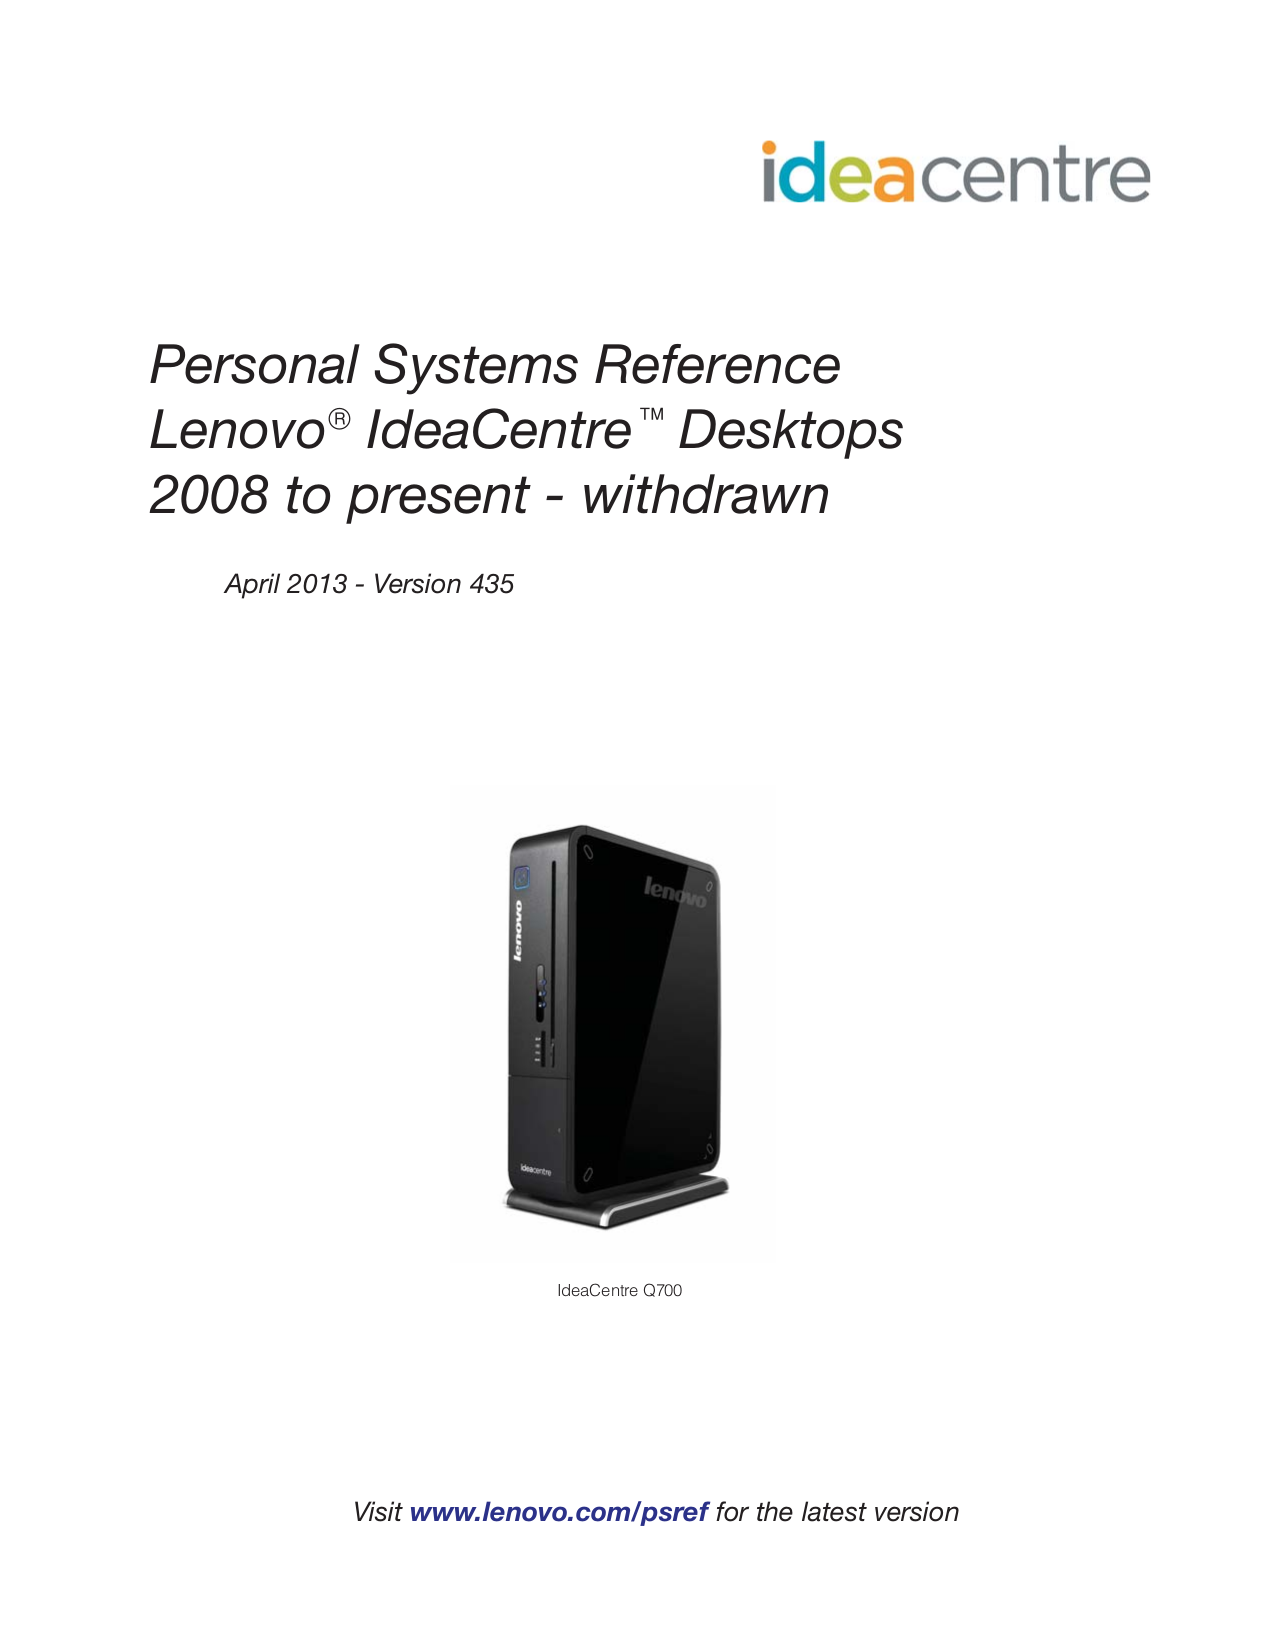 pdf for Lenovo Desktop IdeaCentre A700 4024 manual